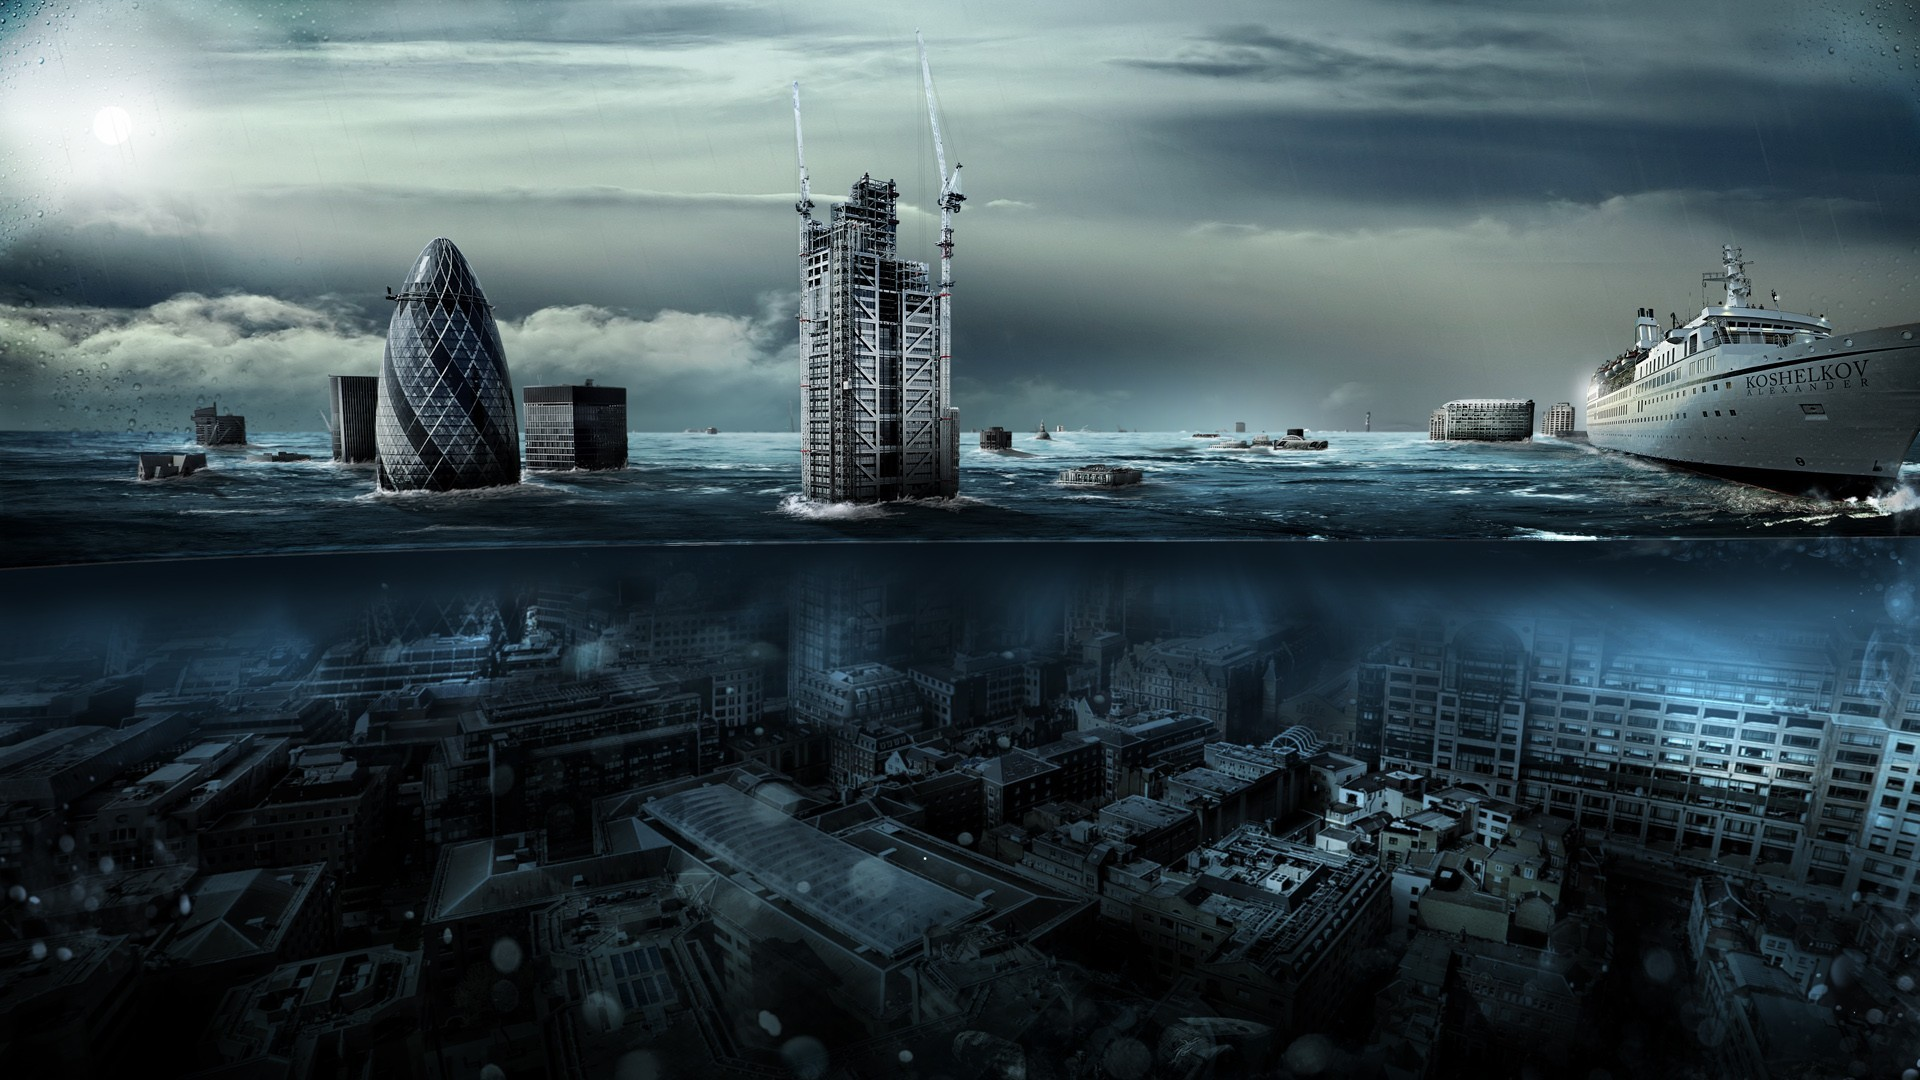 water clouds cityscapes futuristic - photo #1